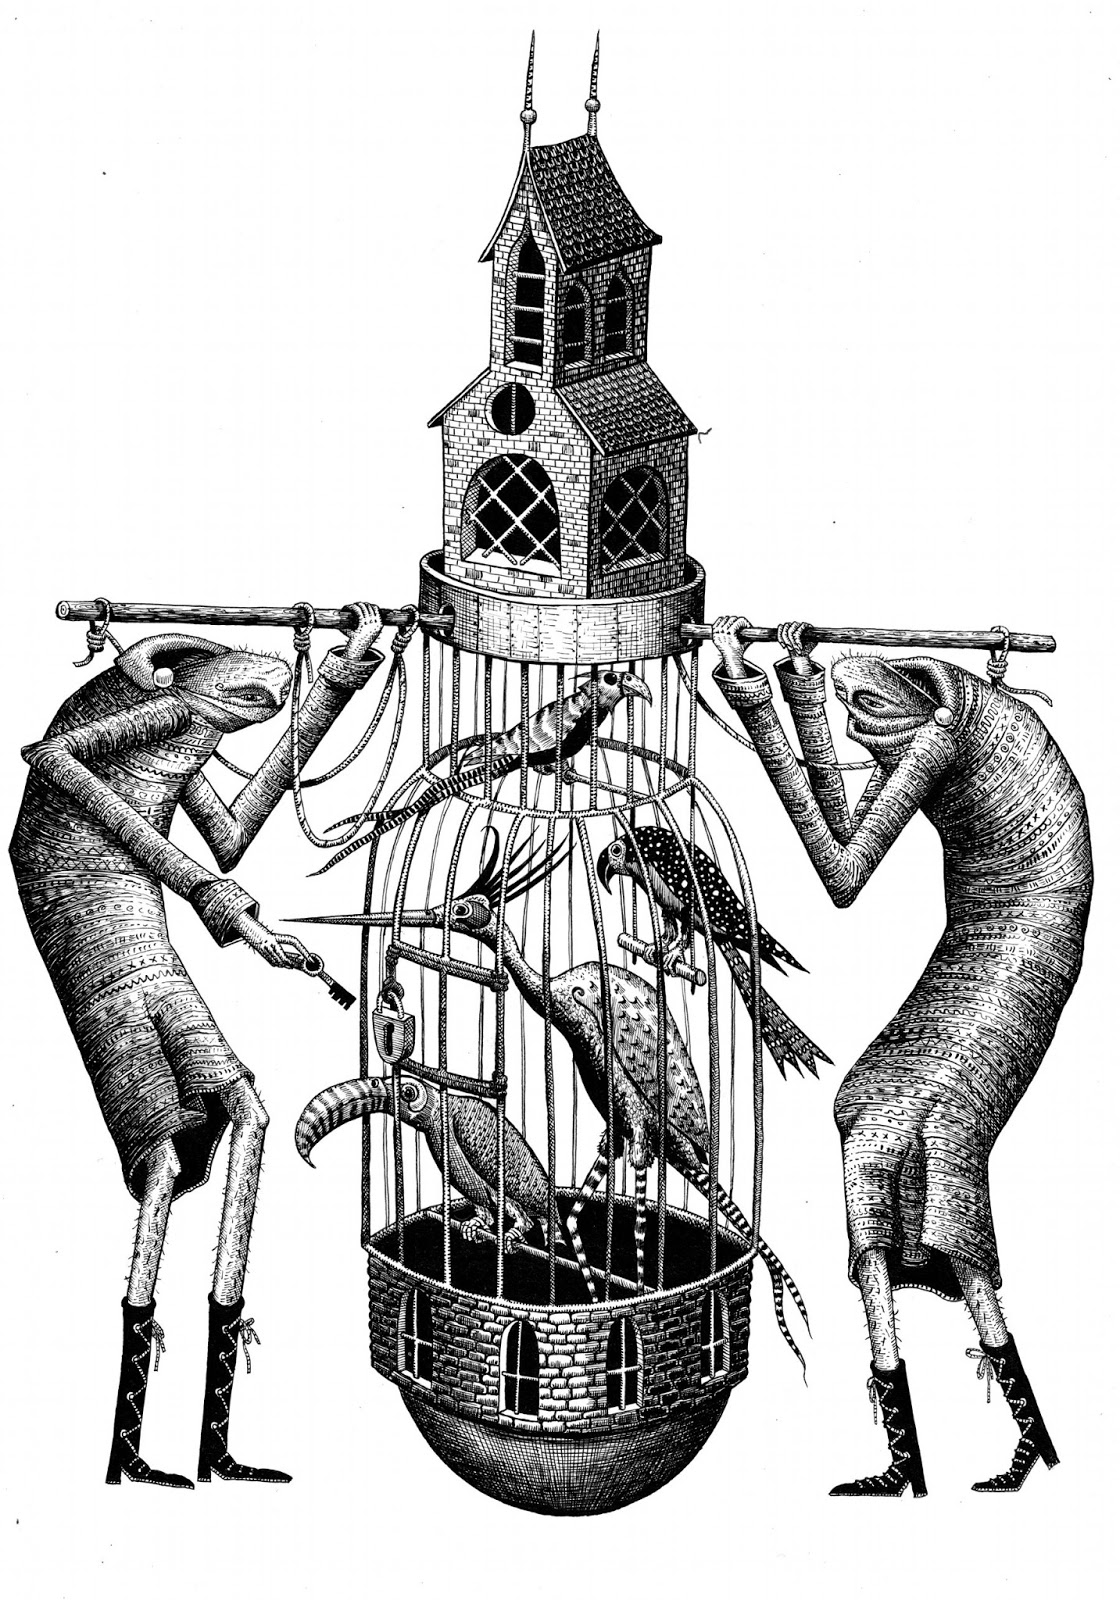 phlegm: Drawings- bird cage and a fish.